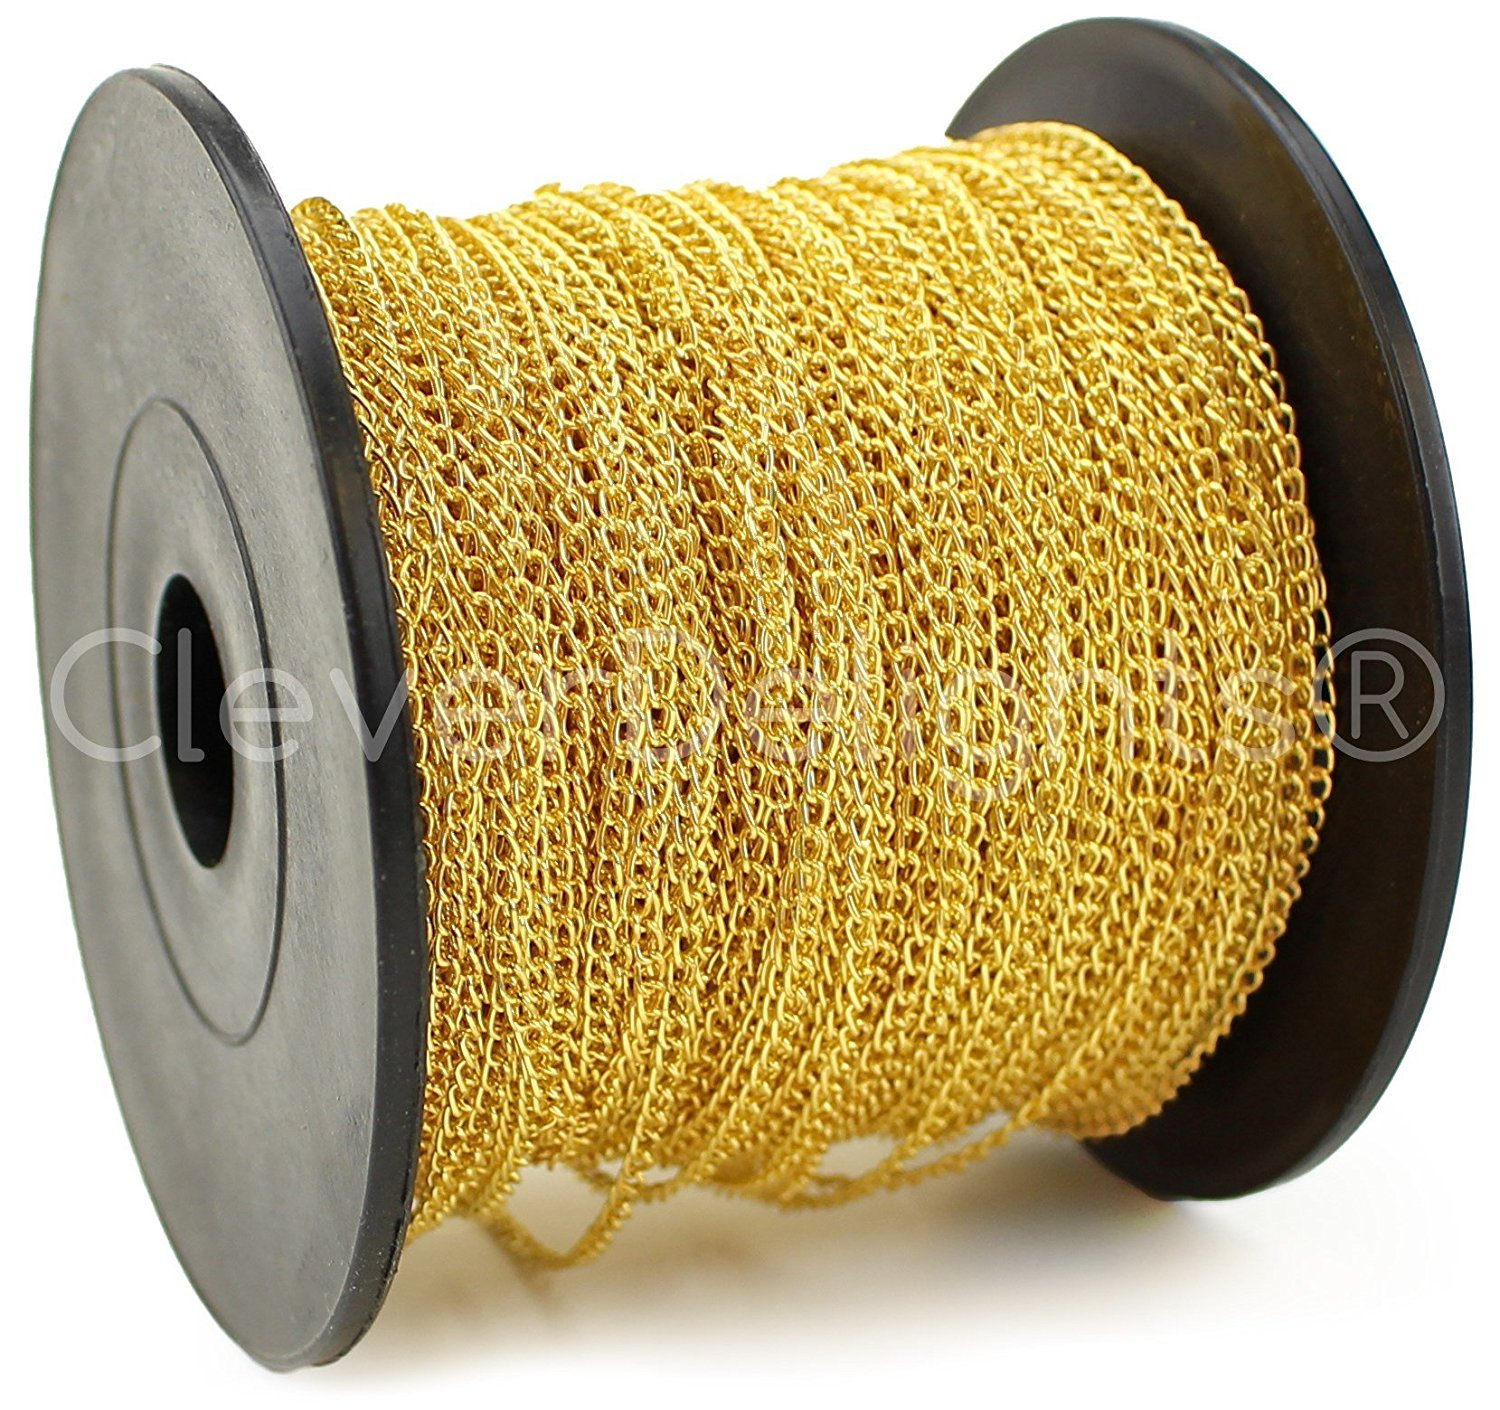 CleverDelights Curb Chain Spool - 2x3mm Link - Gold Color - 330 Feet